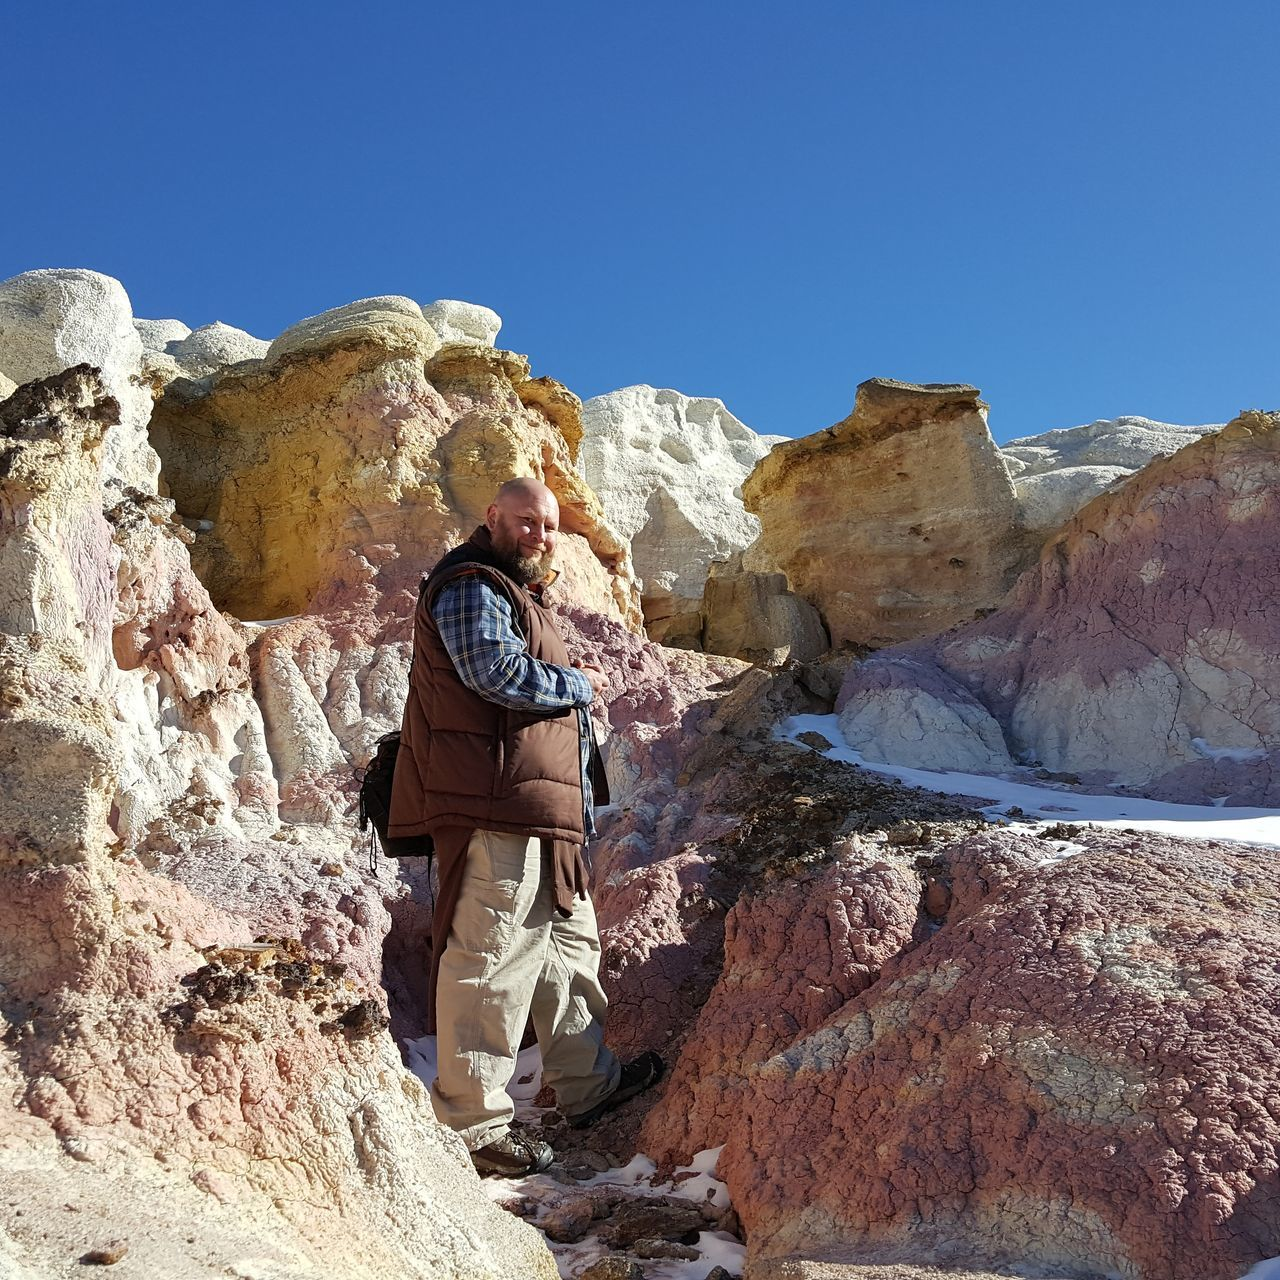 One Man Surrounded By Rocks AGAINST CLEAR BLUE SKY